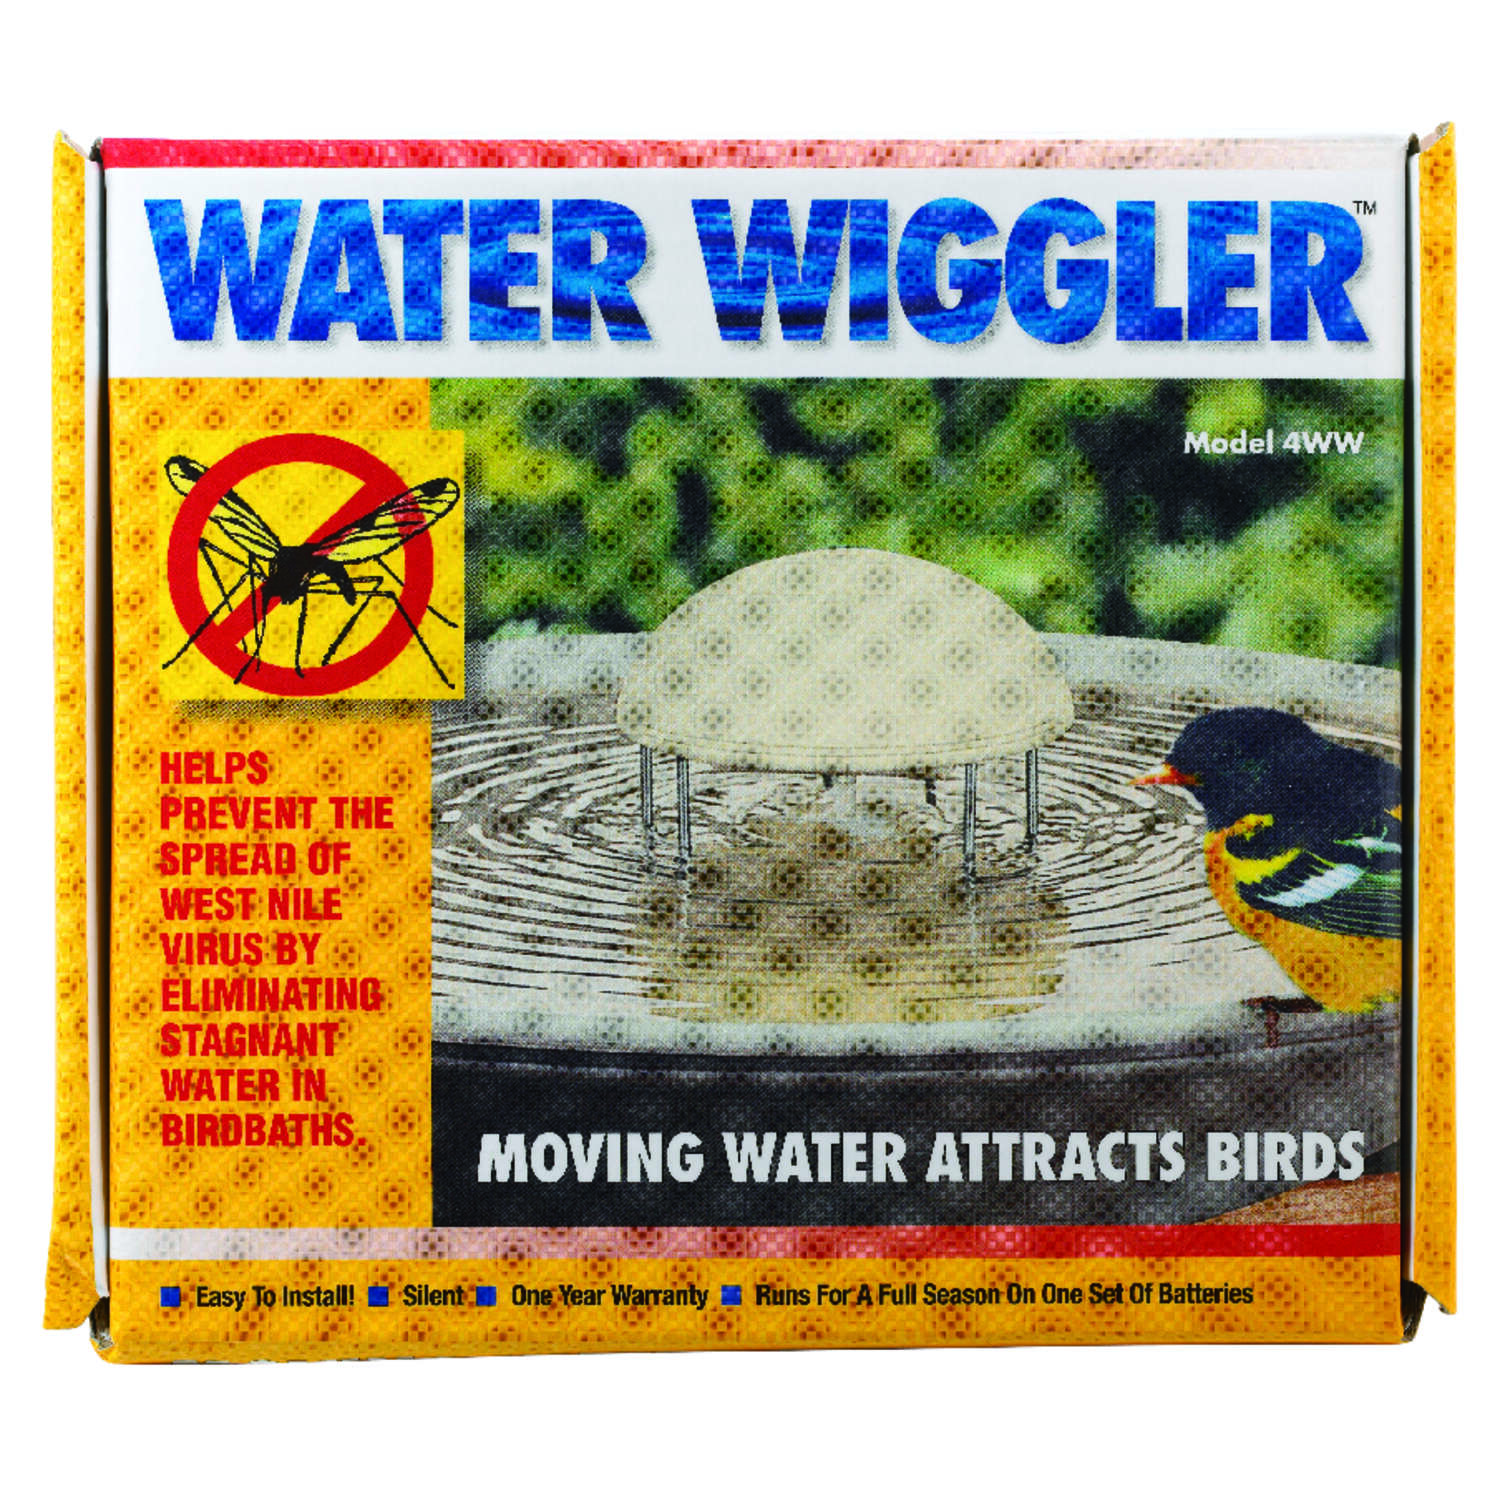 API  5.5 in. H x 5.5 in. W x 3 in. D Water Agitator